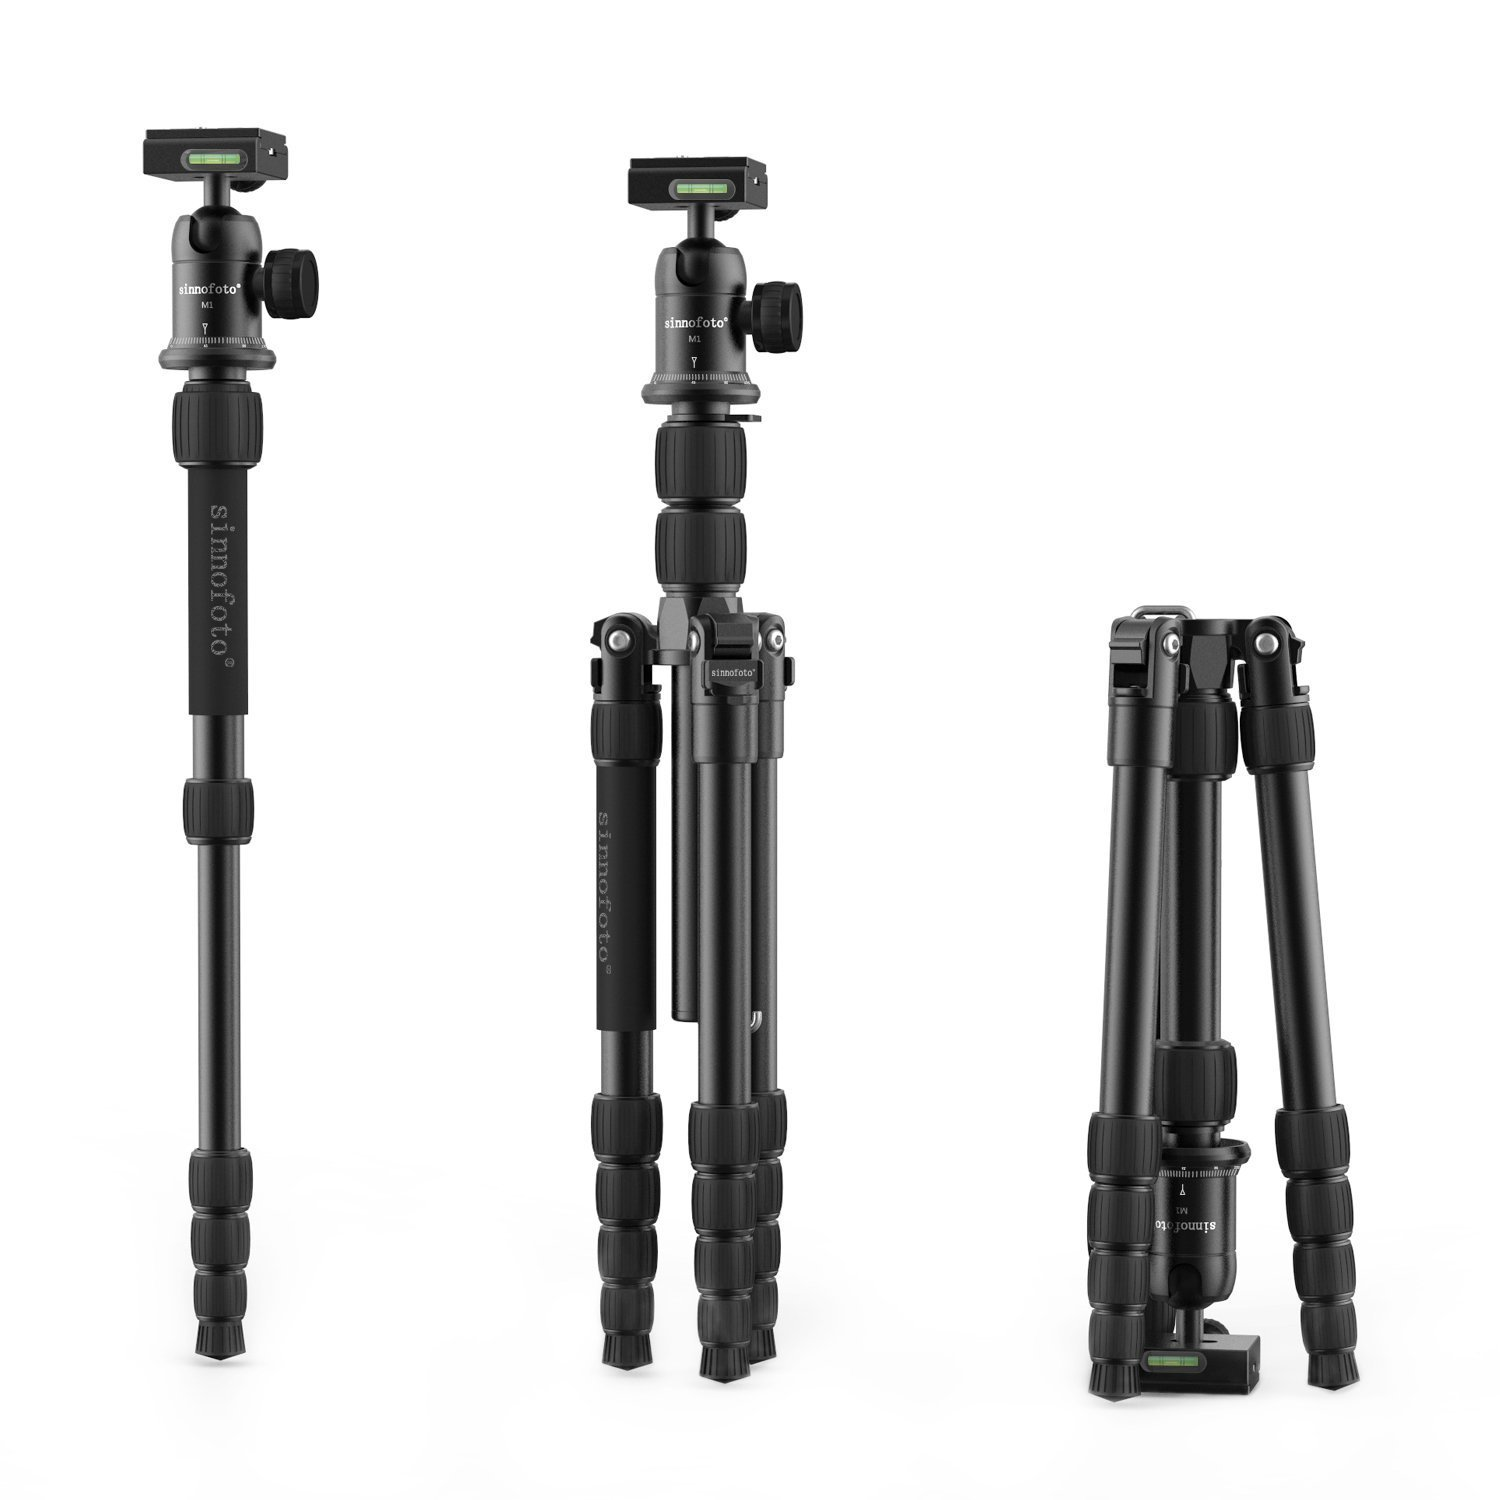 Camera tripod,Sinnofoto M2522 55.9'' Aluminum Portable Travel Lightweight Tripod Monopod+ 1/4'' Quick Release Plate on 360 Degree Tripod Ball Head For DSRL Canon Nikon Sony Fuji Olympus Sigma